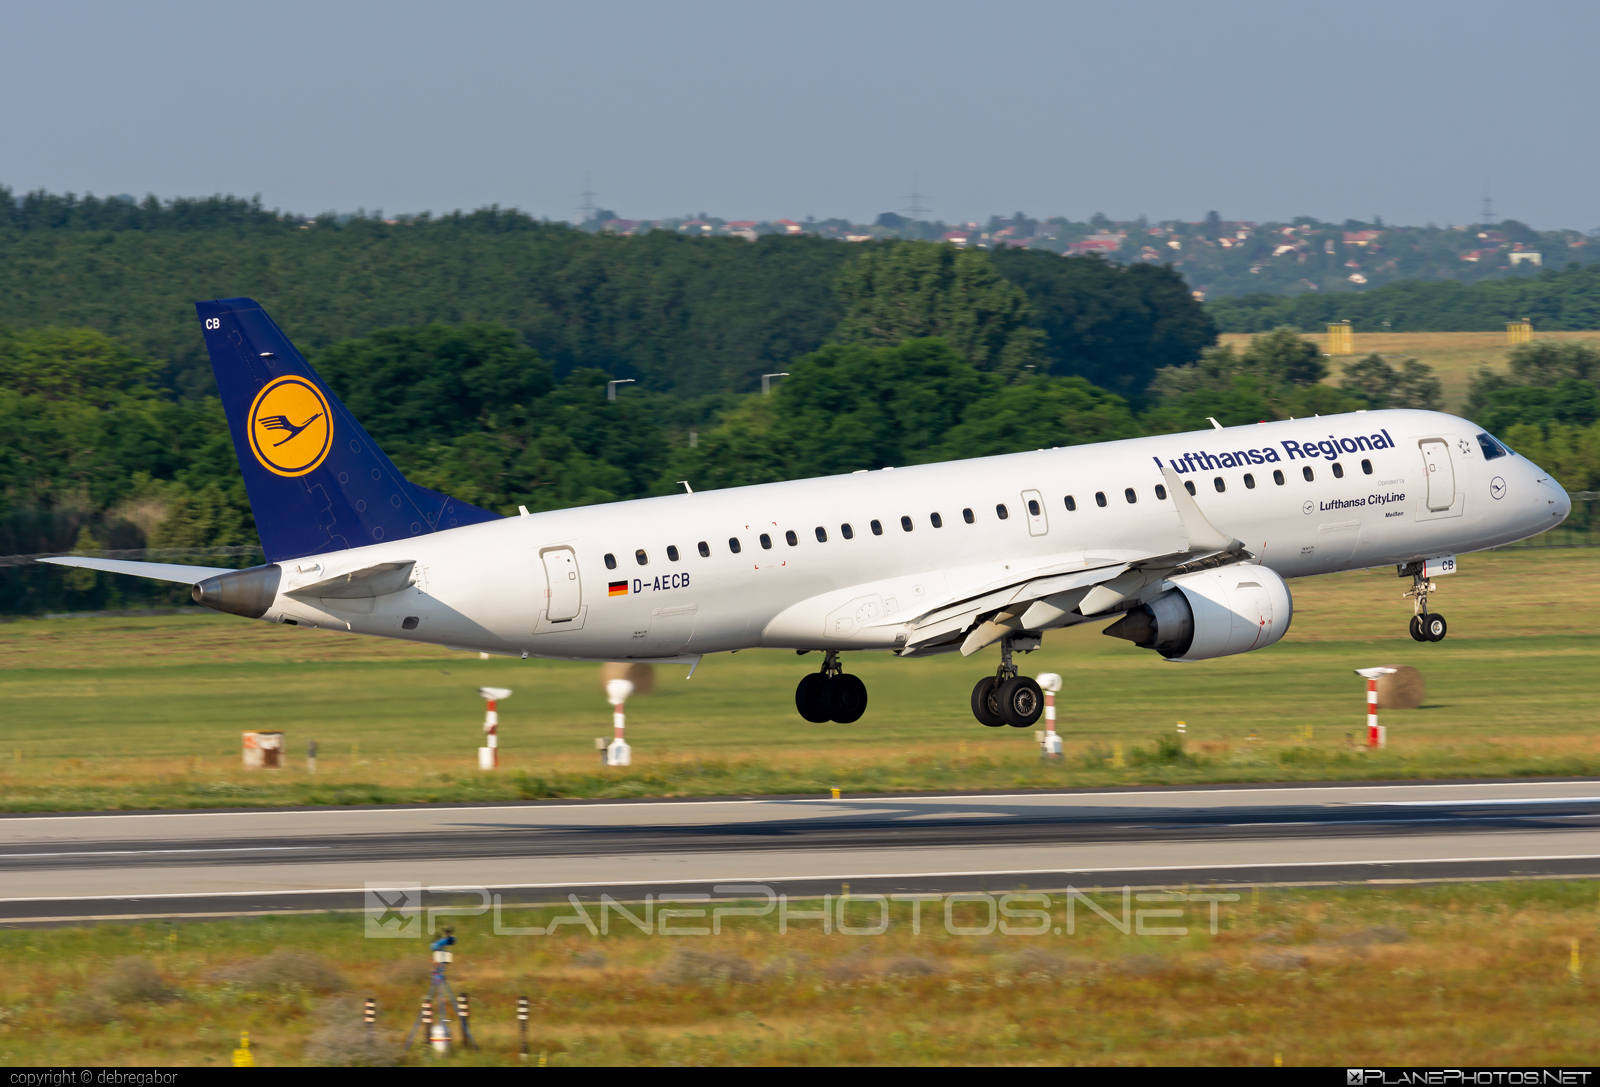 Embraer E190LR (ERJ-190-100LR) - D-AECB operated by Lufthansa CityLine #e190 #e190100 #e190100lr #e190lr #embraer #embraer190 #embraer190100lr #embraer190lr #lufthansa #lufthansacityline